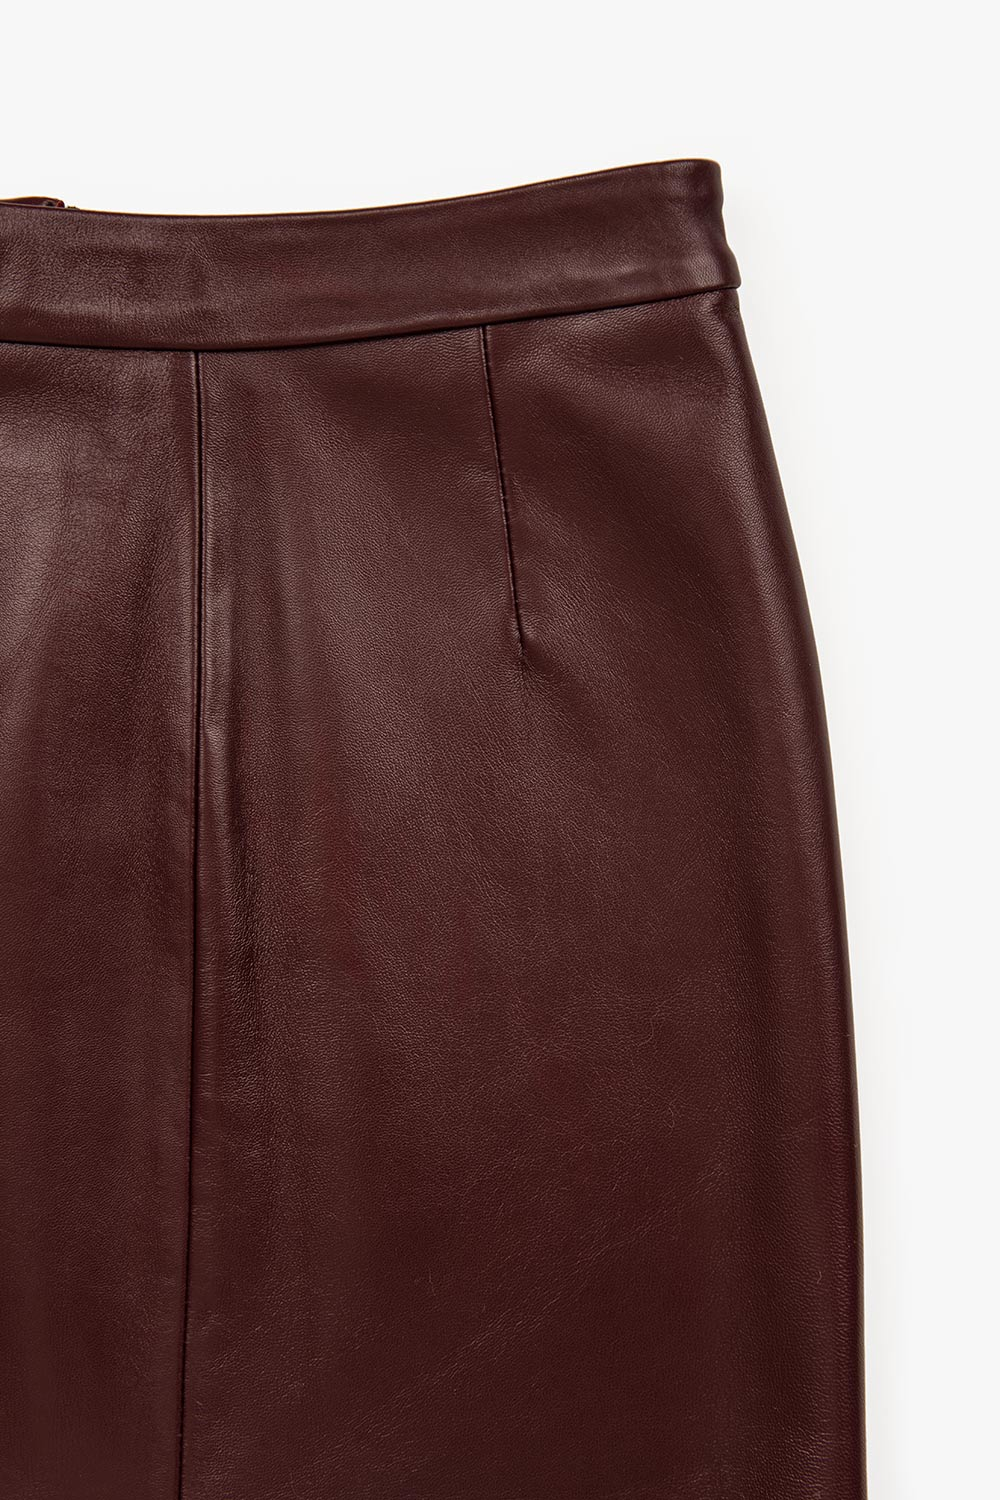 Zip Up Leather Mini Skirt